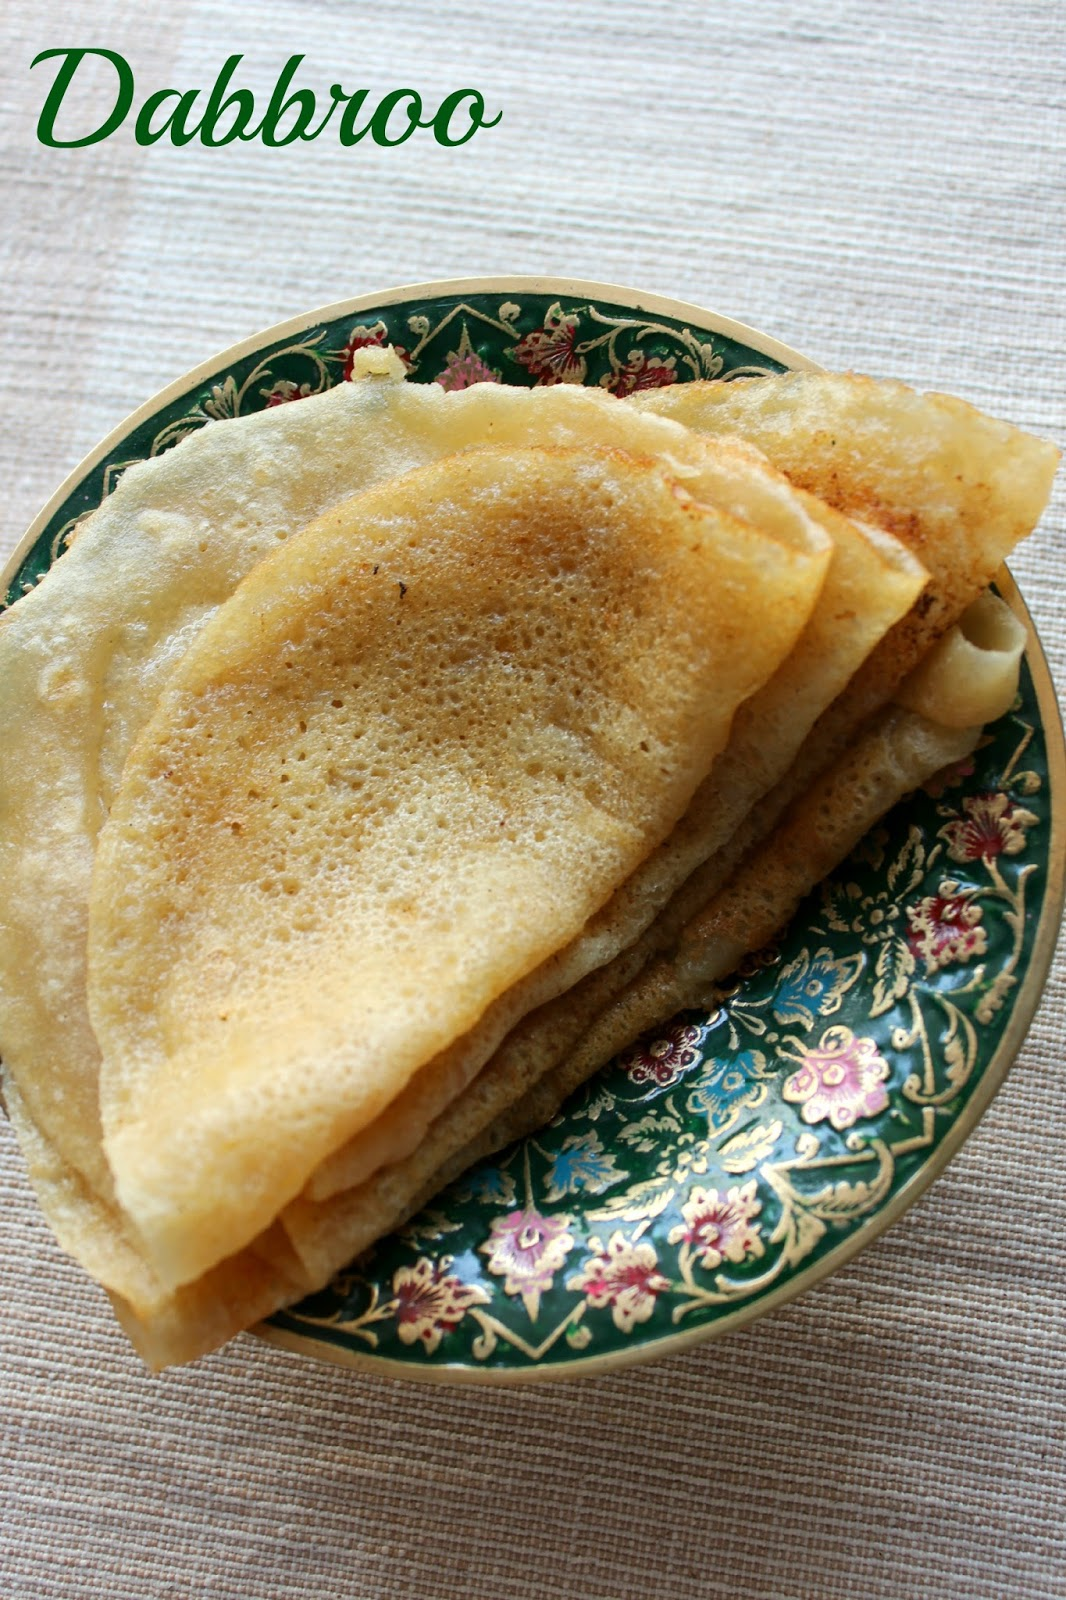 dabbroo,sweet wheat pancakes